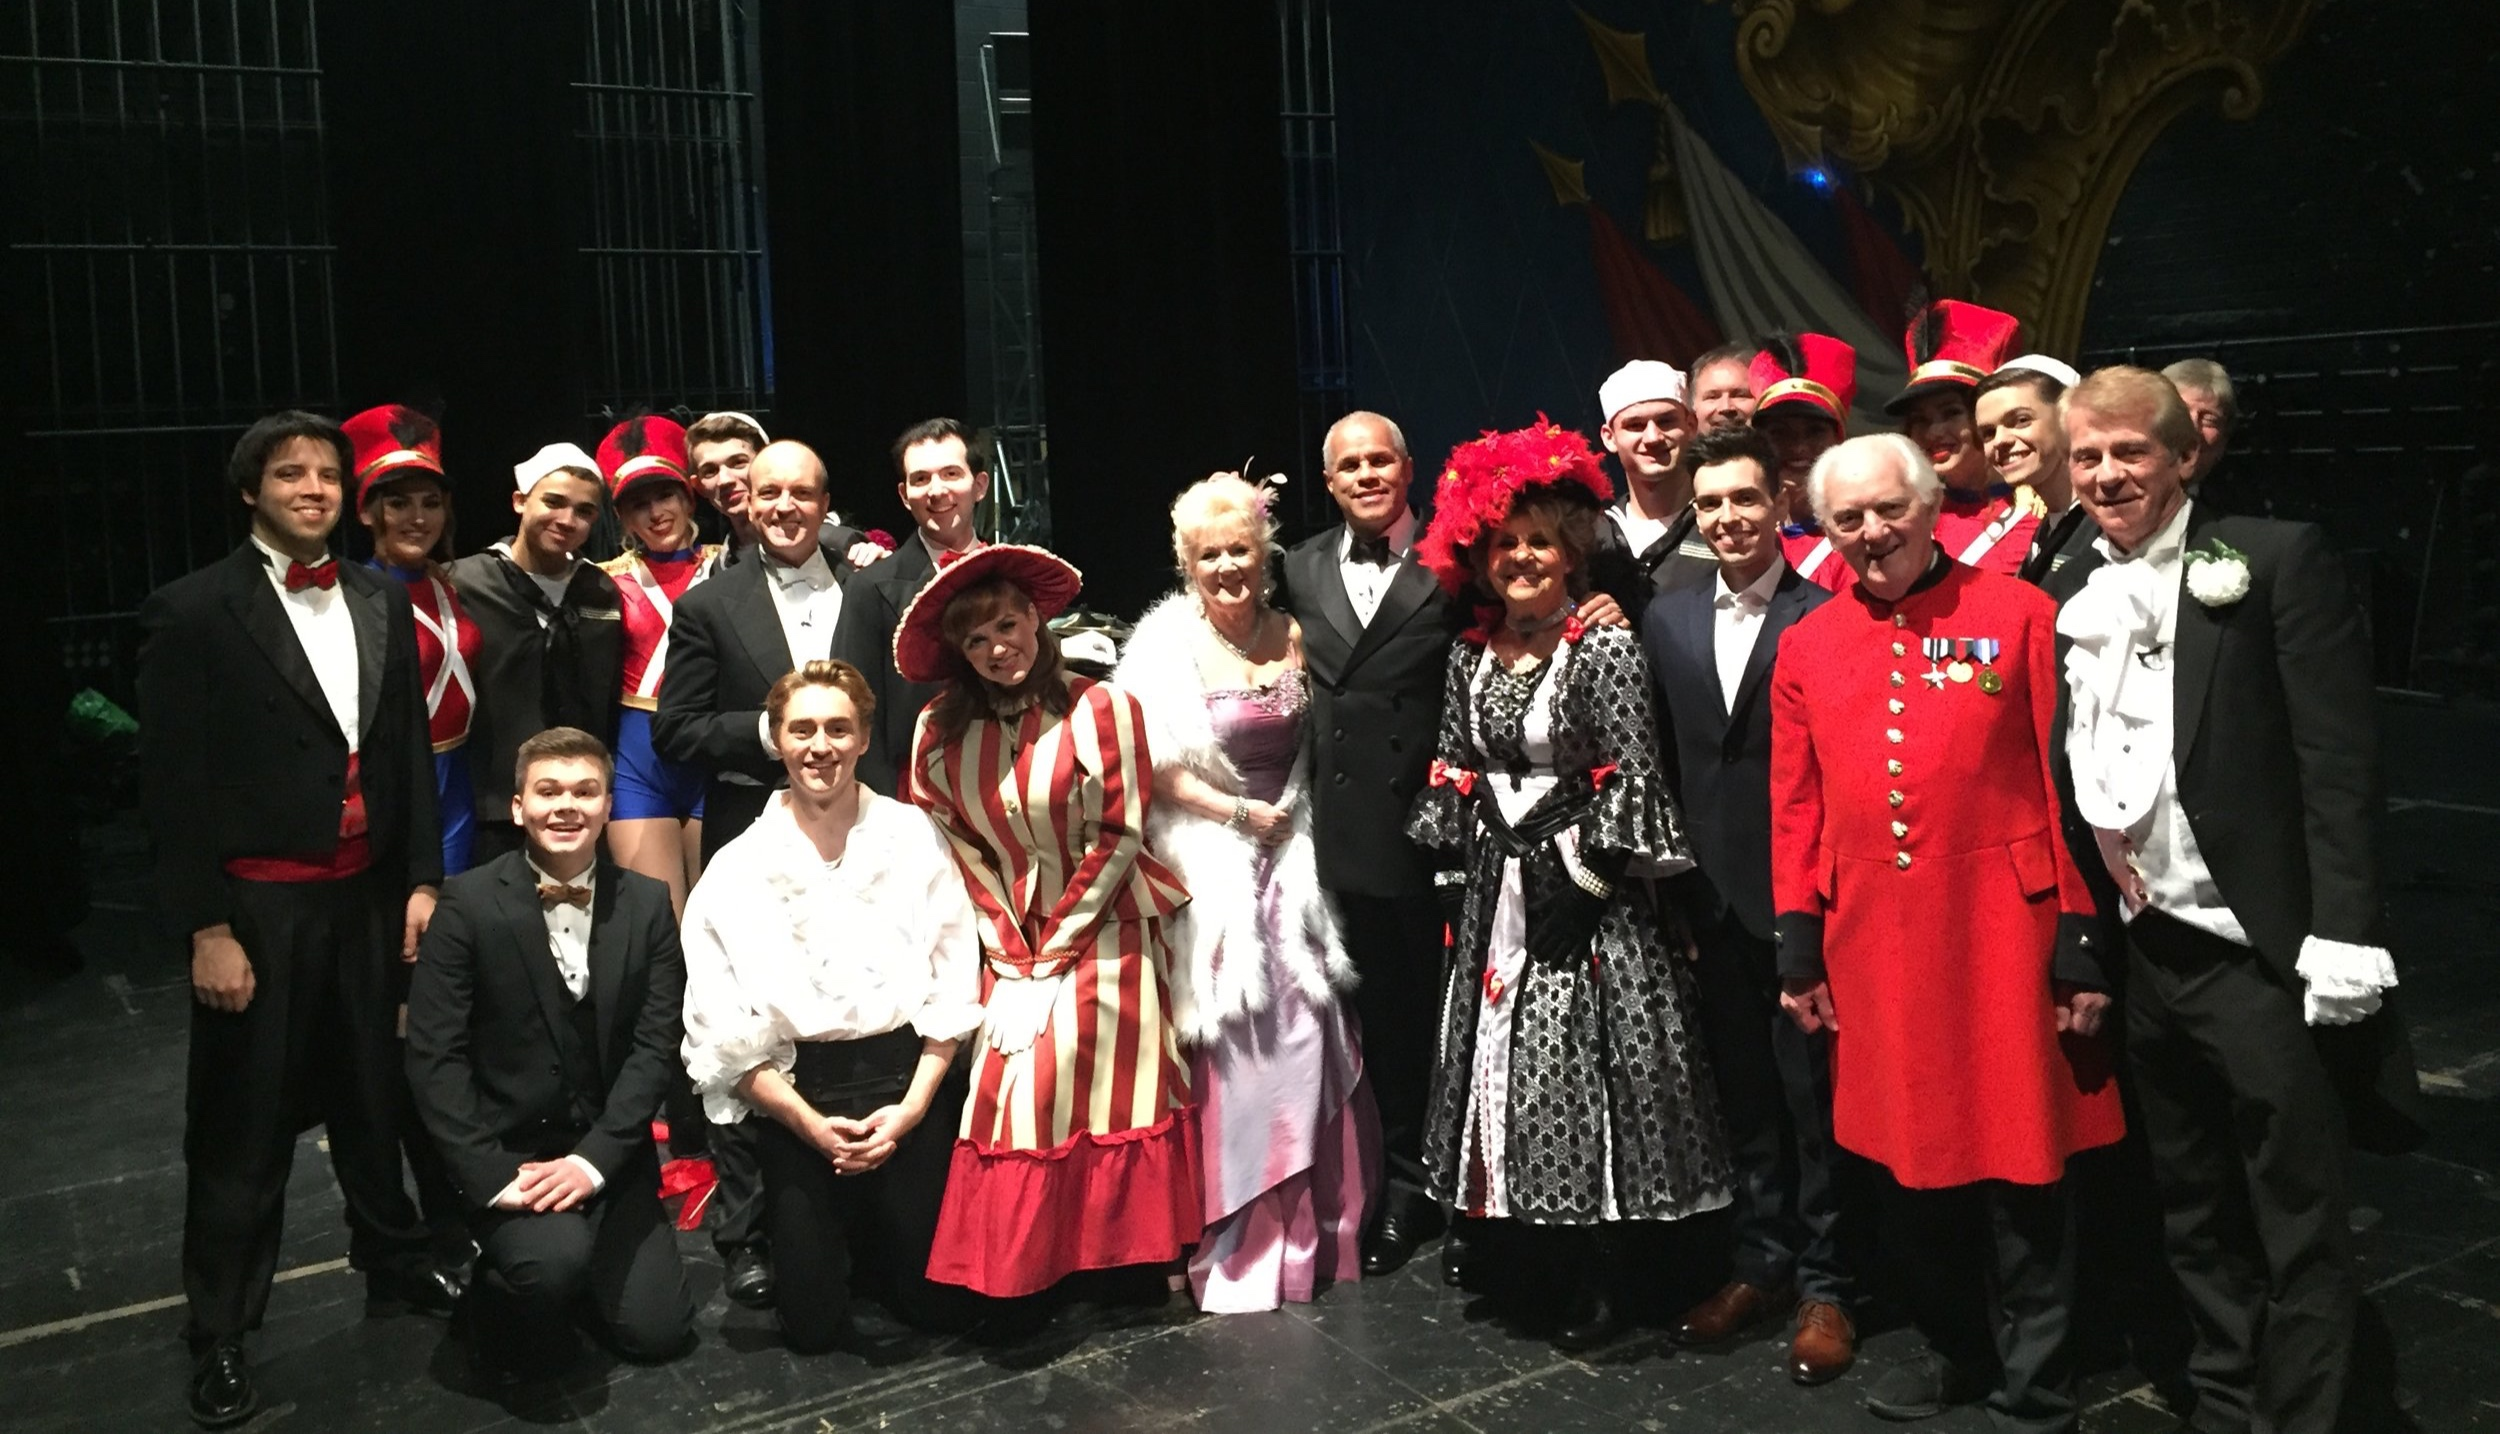 The cast of 'The Magnificent Music Hall', 23 January 2019 onstage at the New Wimbledon Theatre.